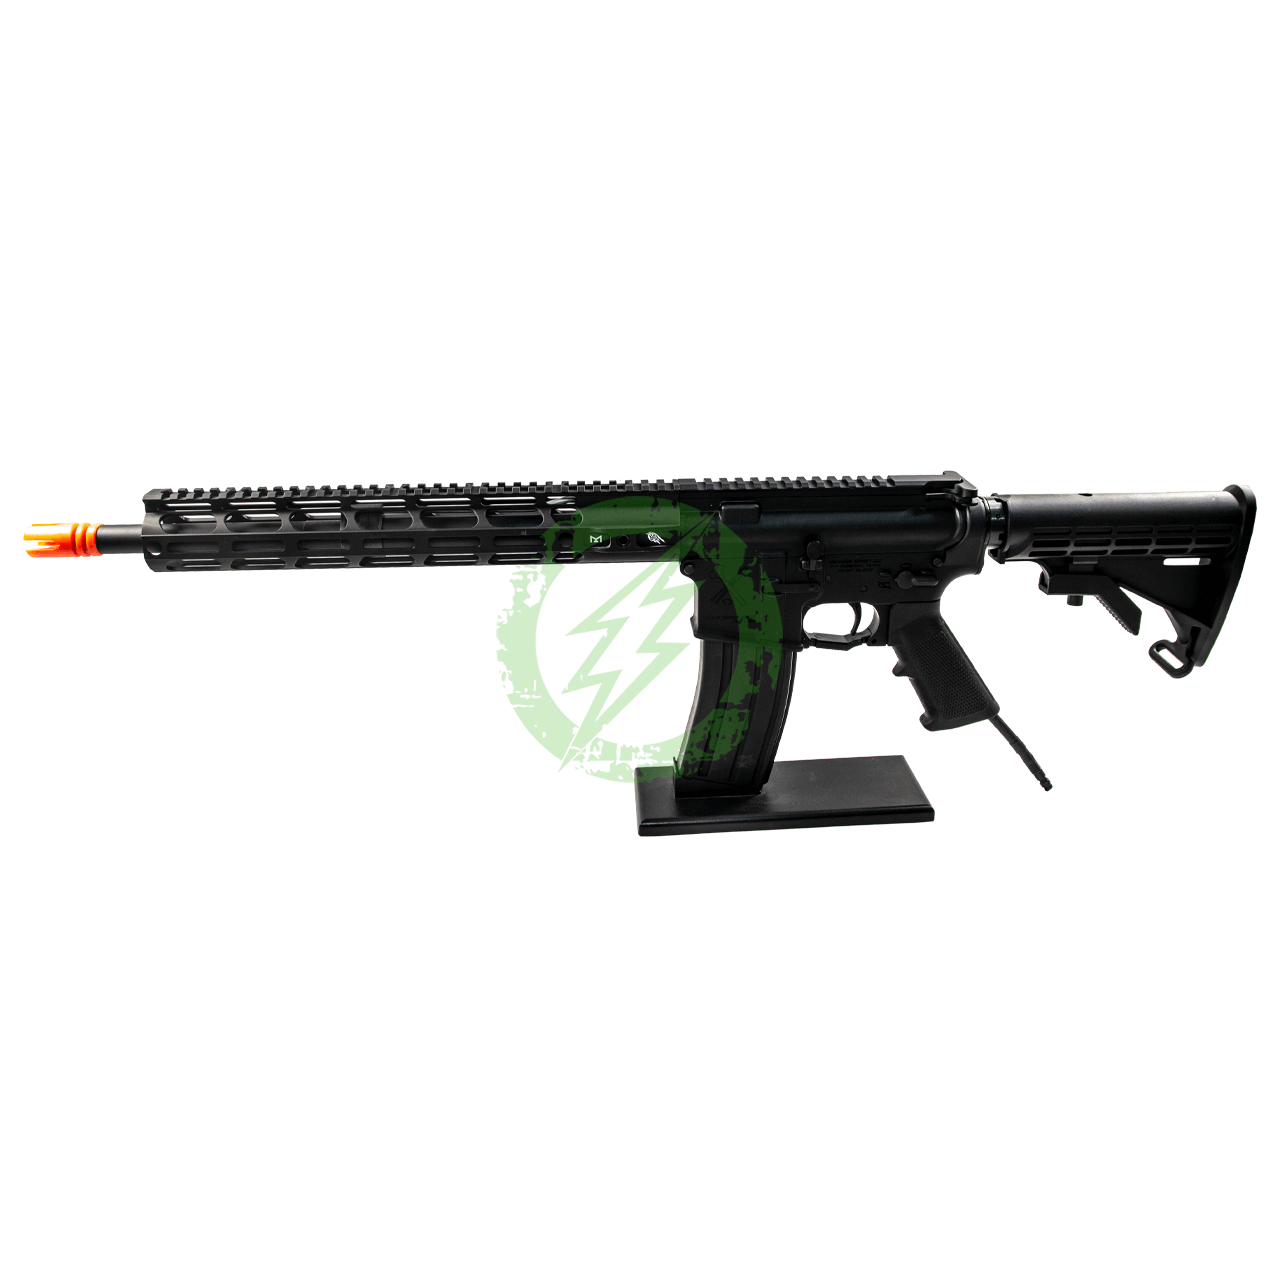 "Wolverine Airsoft MTW FORGED Edition | 14.5"" Barrel left"